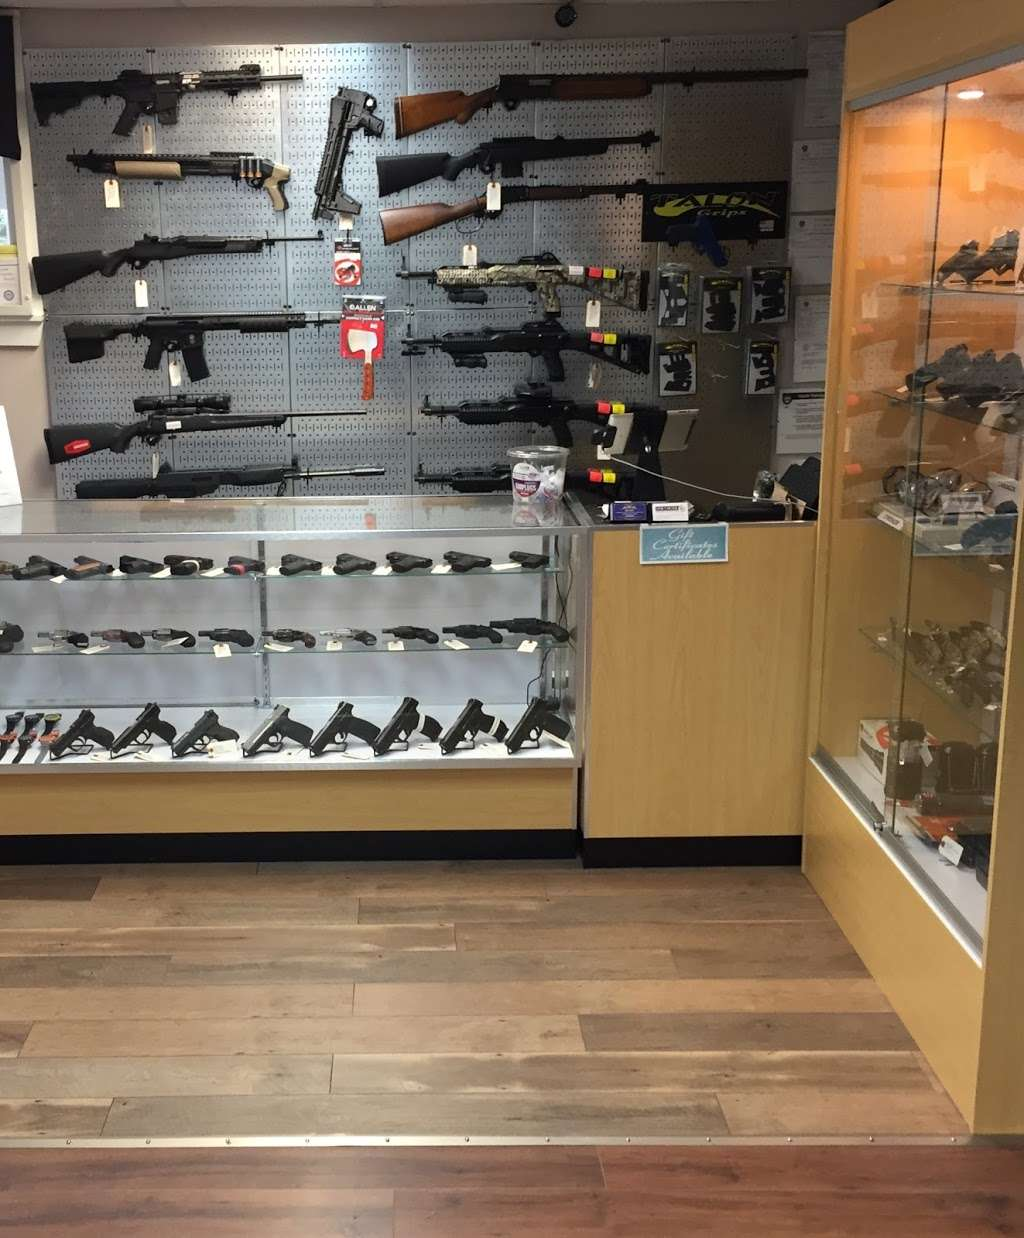 Steves Tactical - store  | Photo 3 of 10 | Address: 971 Central St, Stoughton, MA 02072, USA | Phone: (781) 436-0549